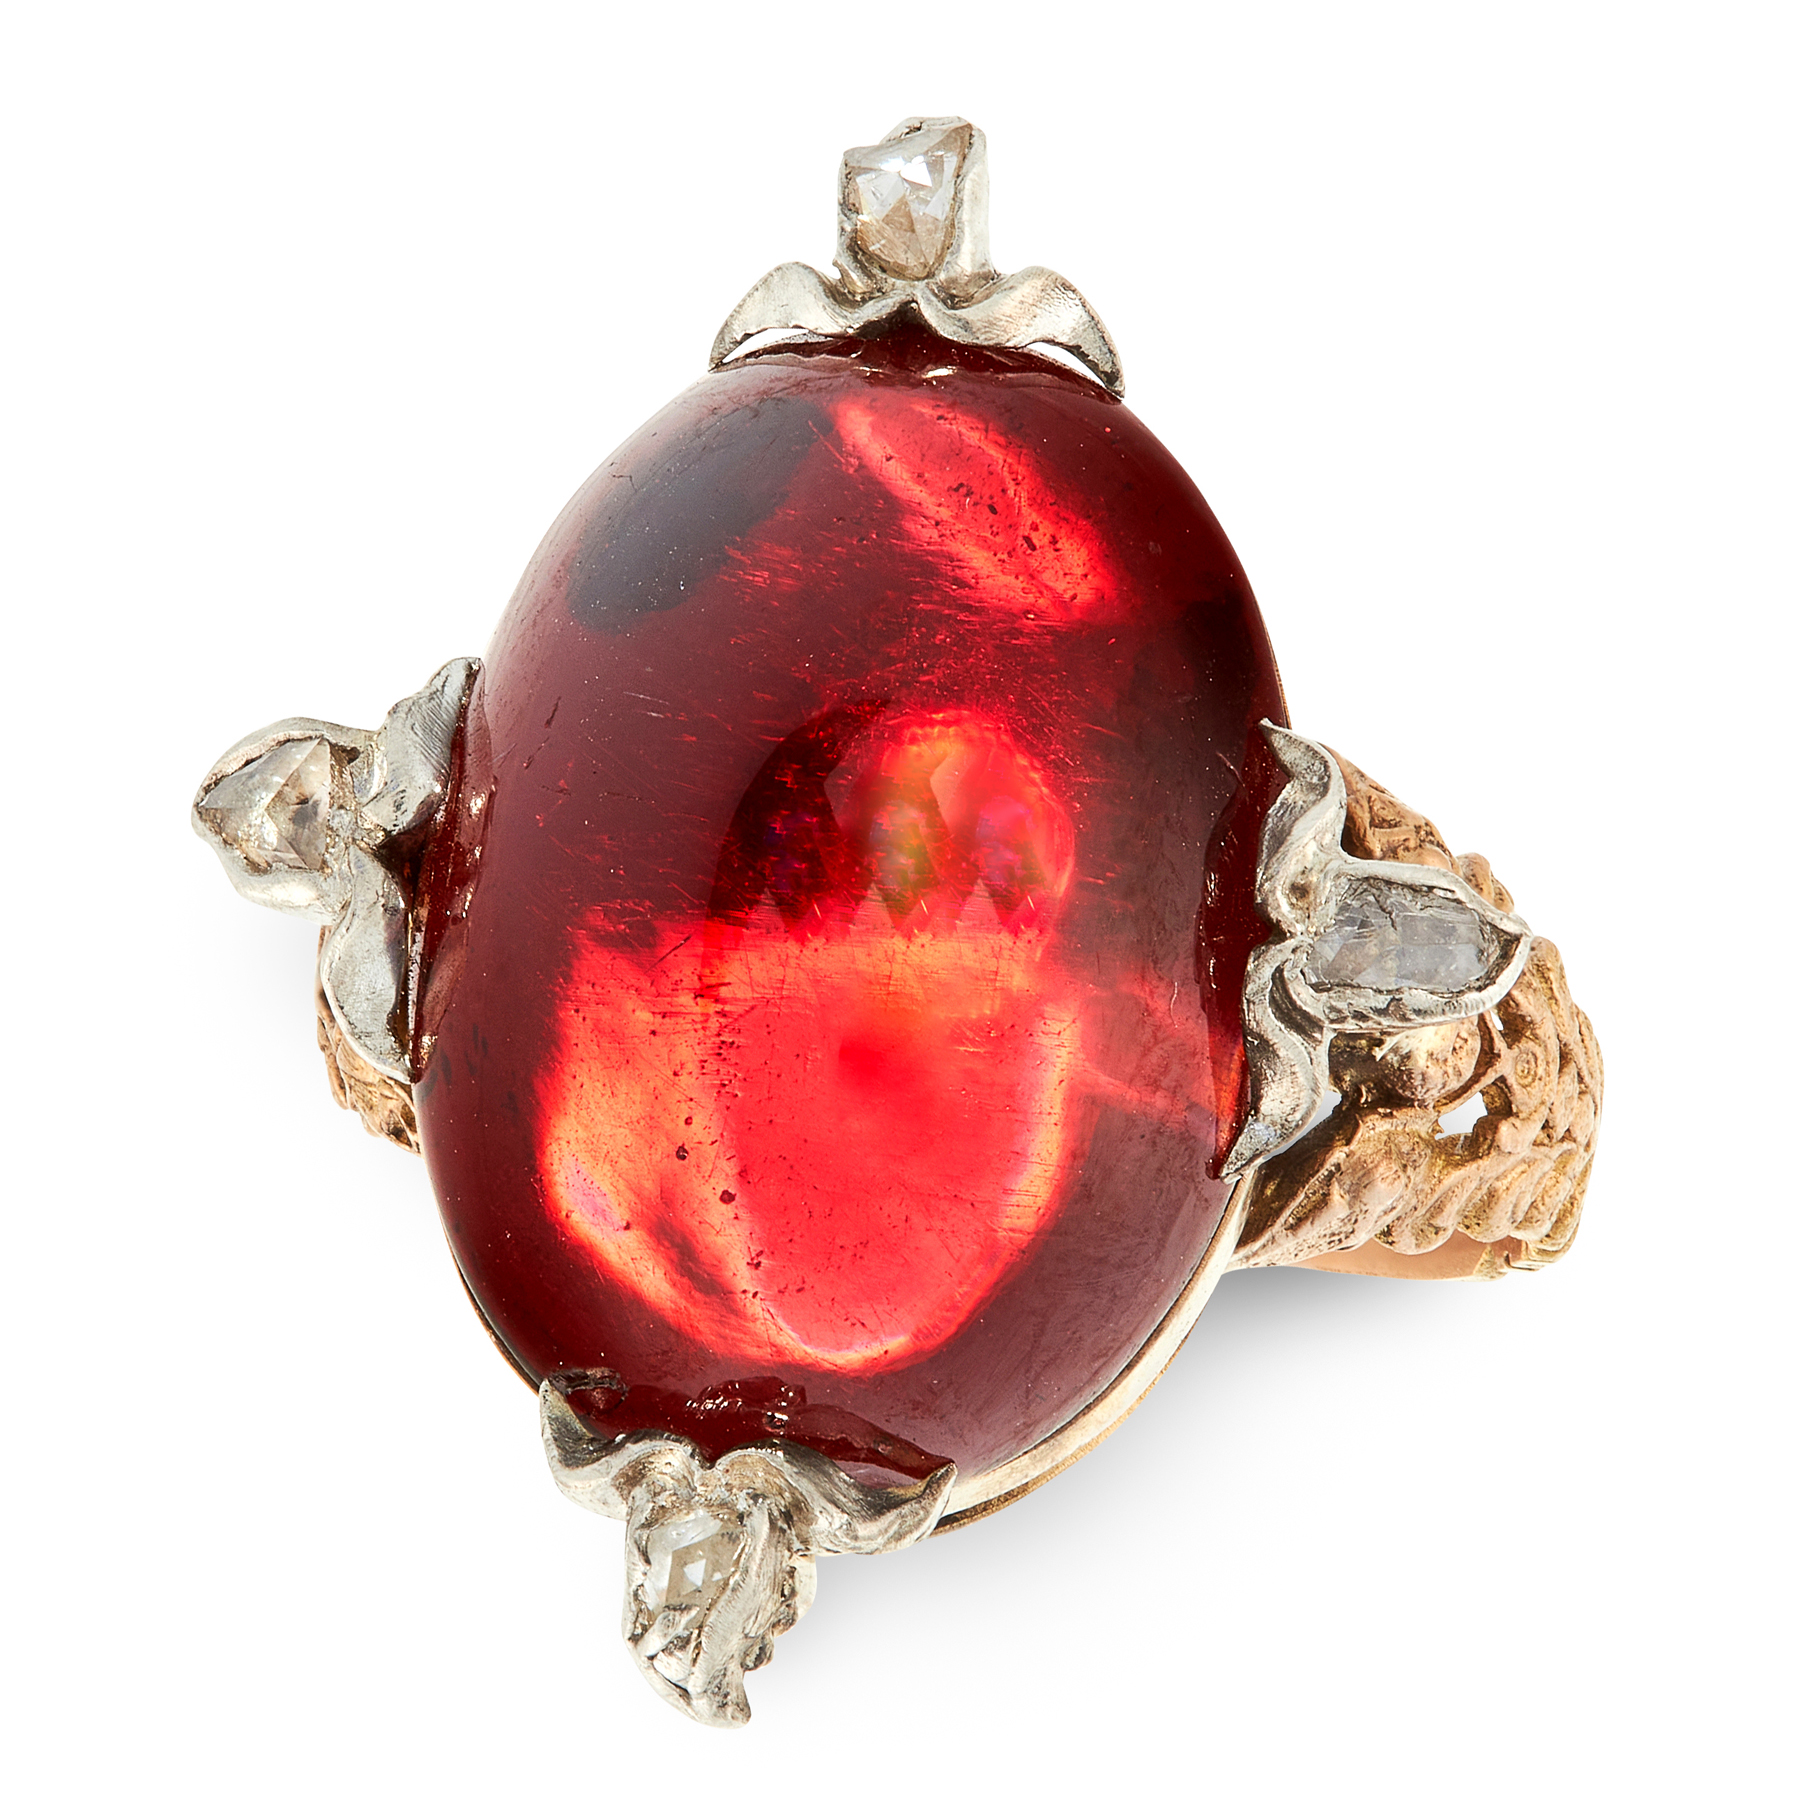 AN ANTIQUE GARNET AND DIAMOND RING in yellow gold and silver, set with an oval cabochon garnet